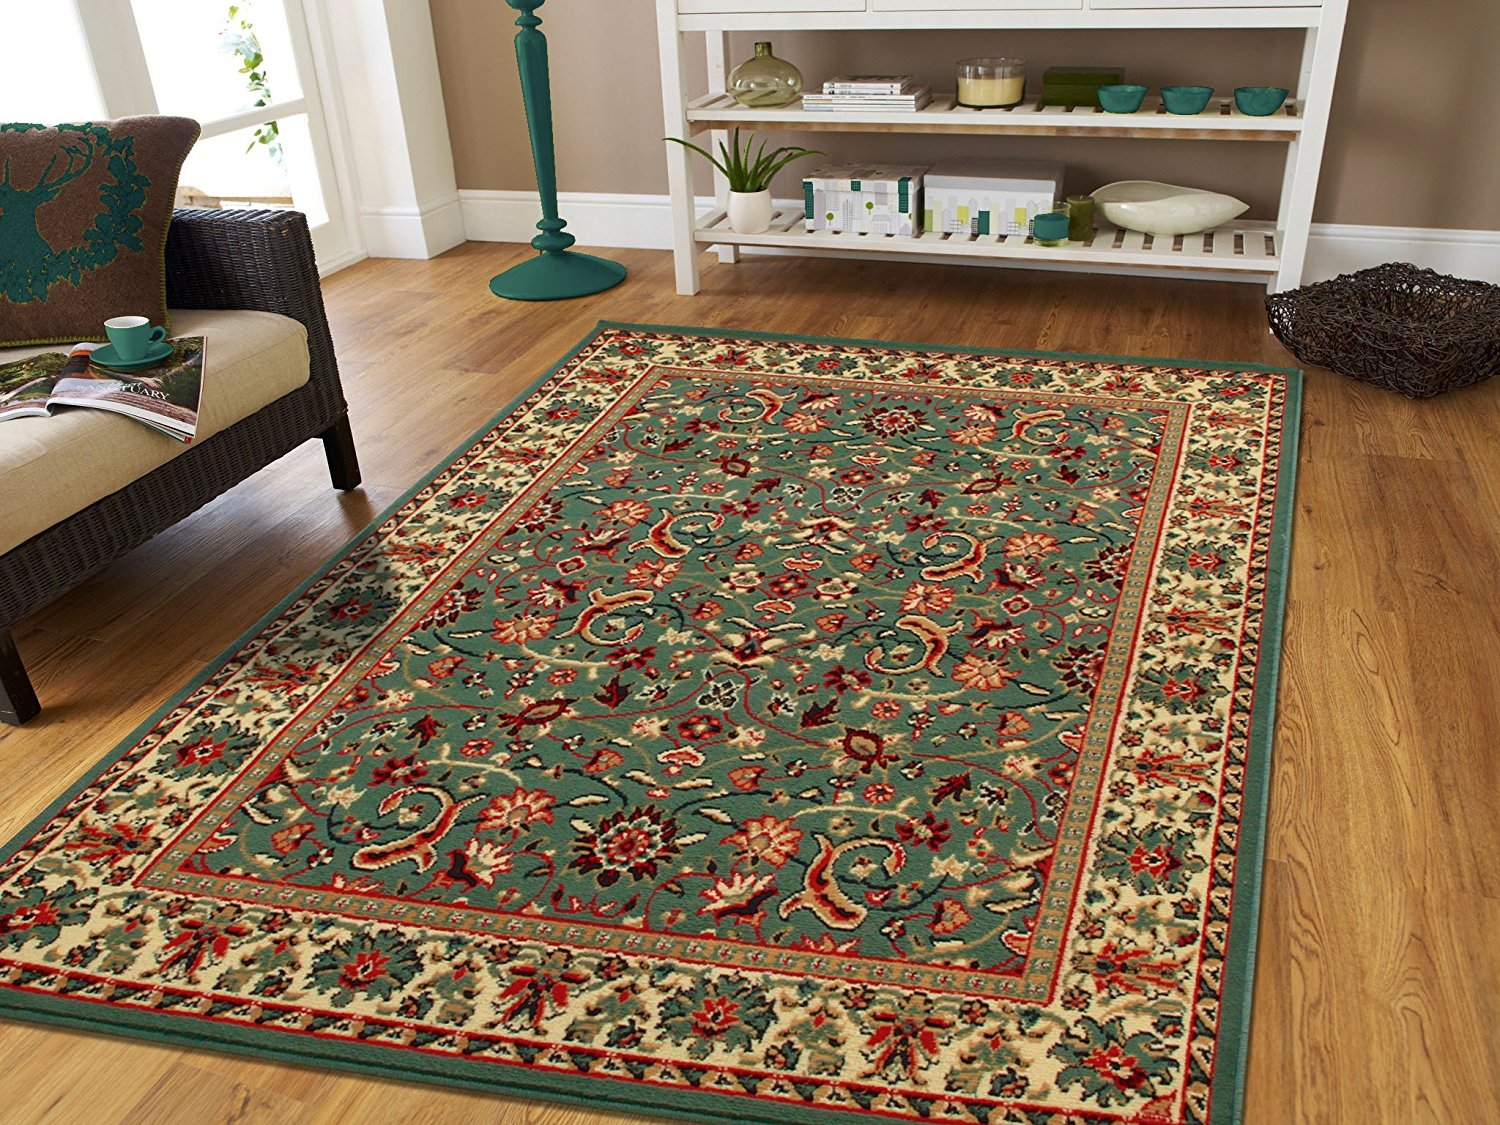 Oriental rugs amazon.com: large oriental rugs 2x3 traditional rugs red cream green persian  rugs KHNZPDE